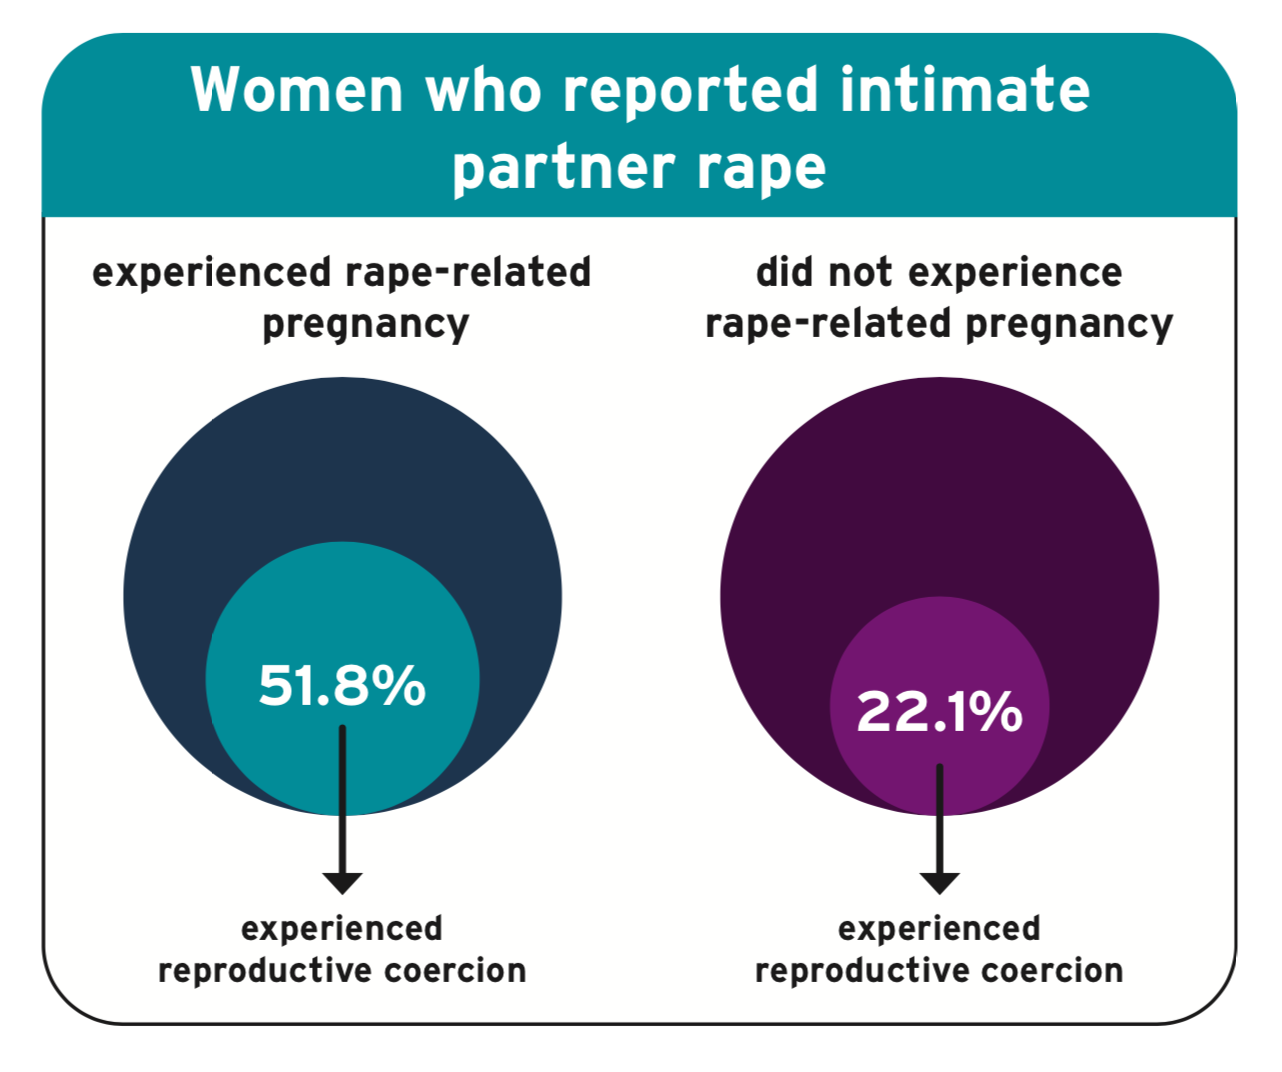 Title: Women who reported intimate partner rape. Experienced rape-related pregnancy: 51.8% experienced reproductive coercion. Did not experience rape-related pregnancy: 22.1% experienced reproductive coercion